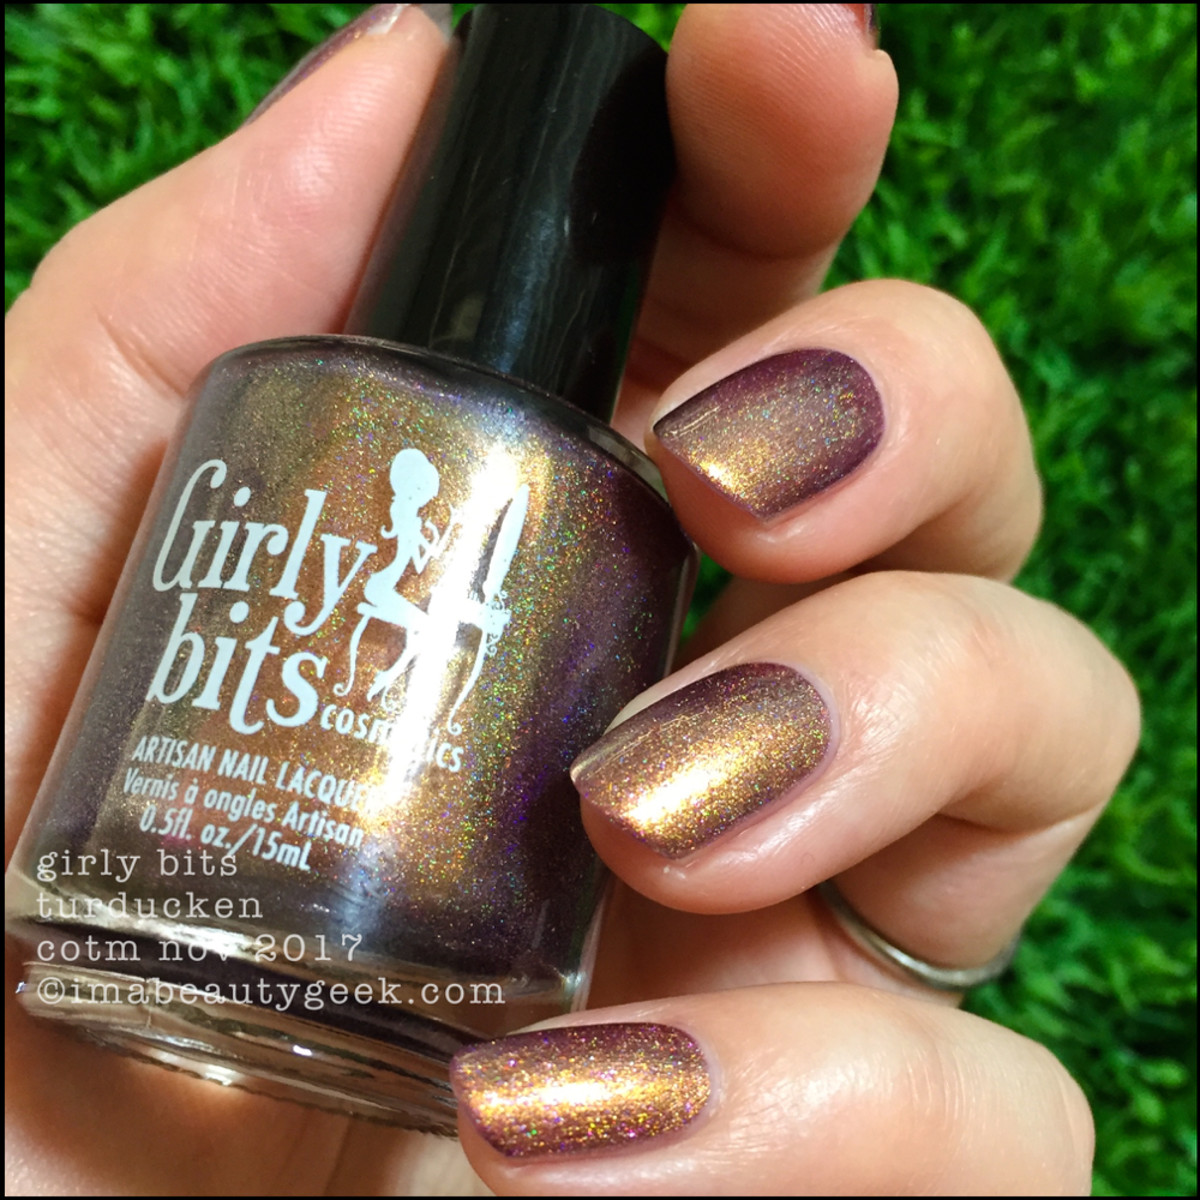 Girly Bits Turducken COTM 4 _ Girly Bits LE Colour of the Month Nov 2017